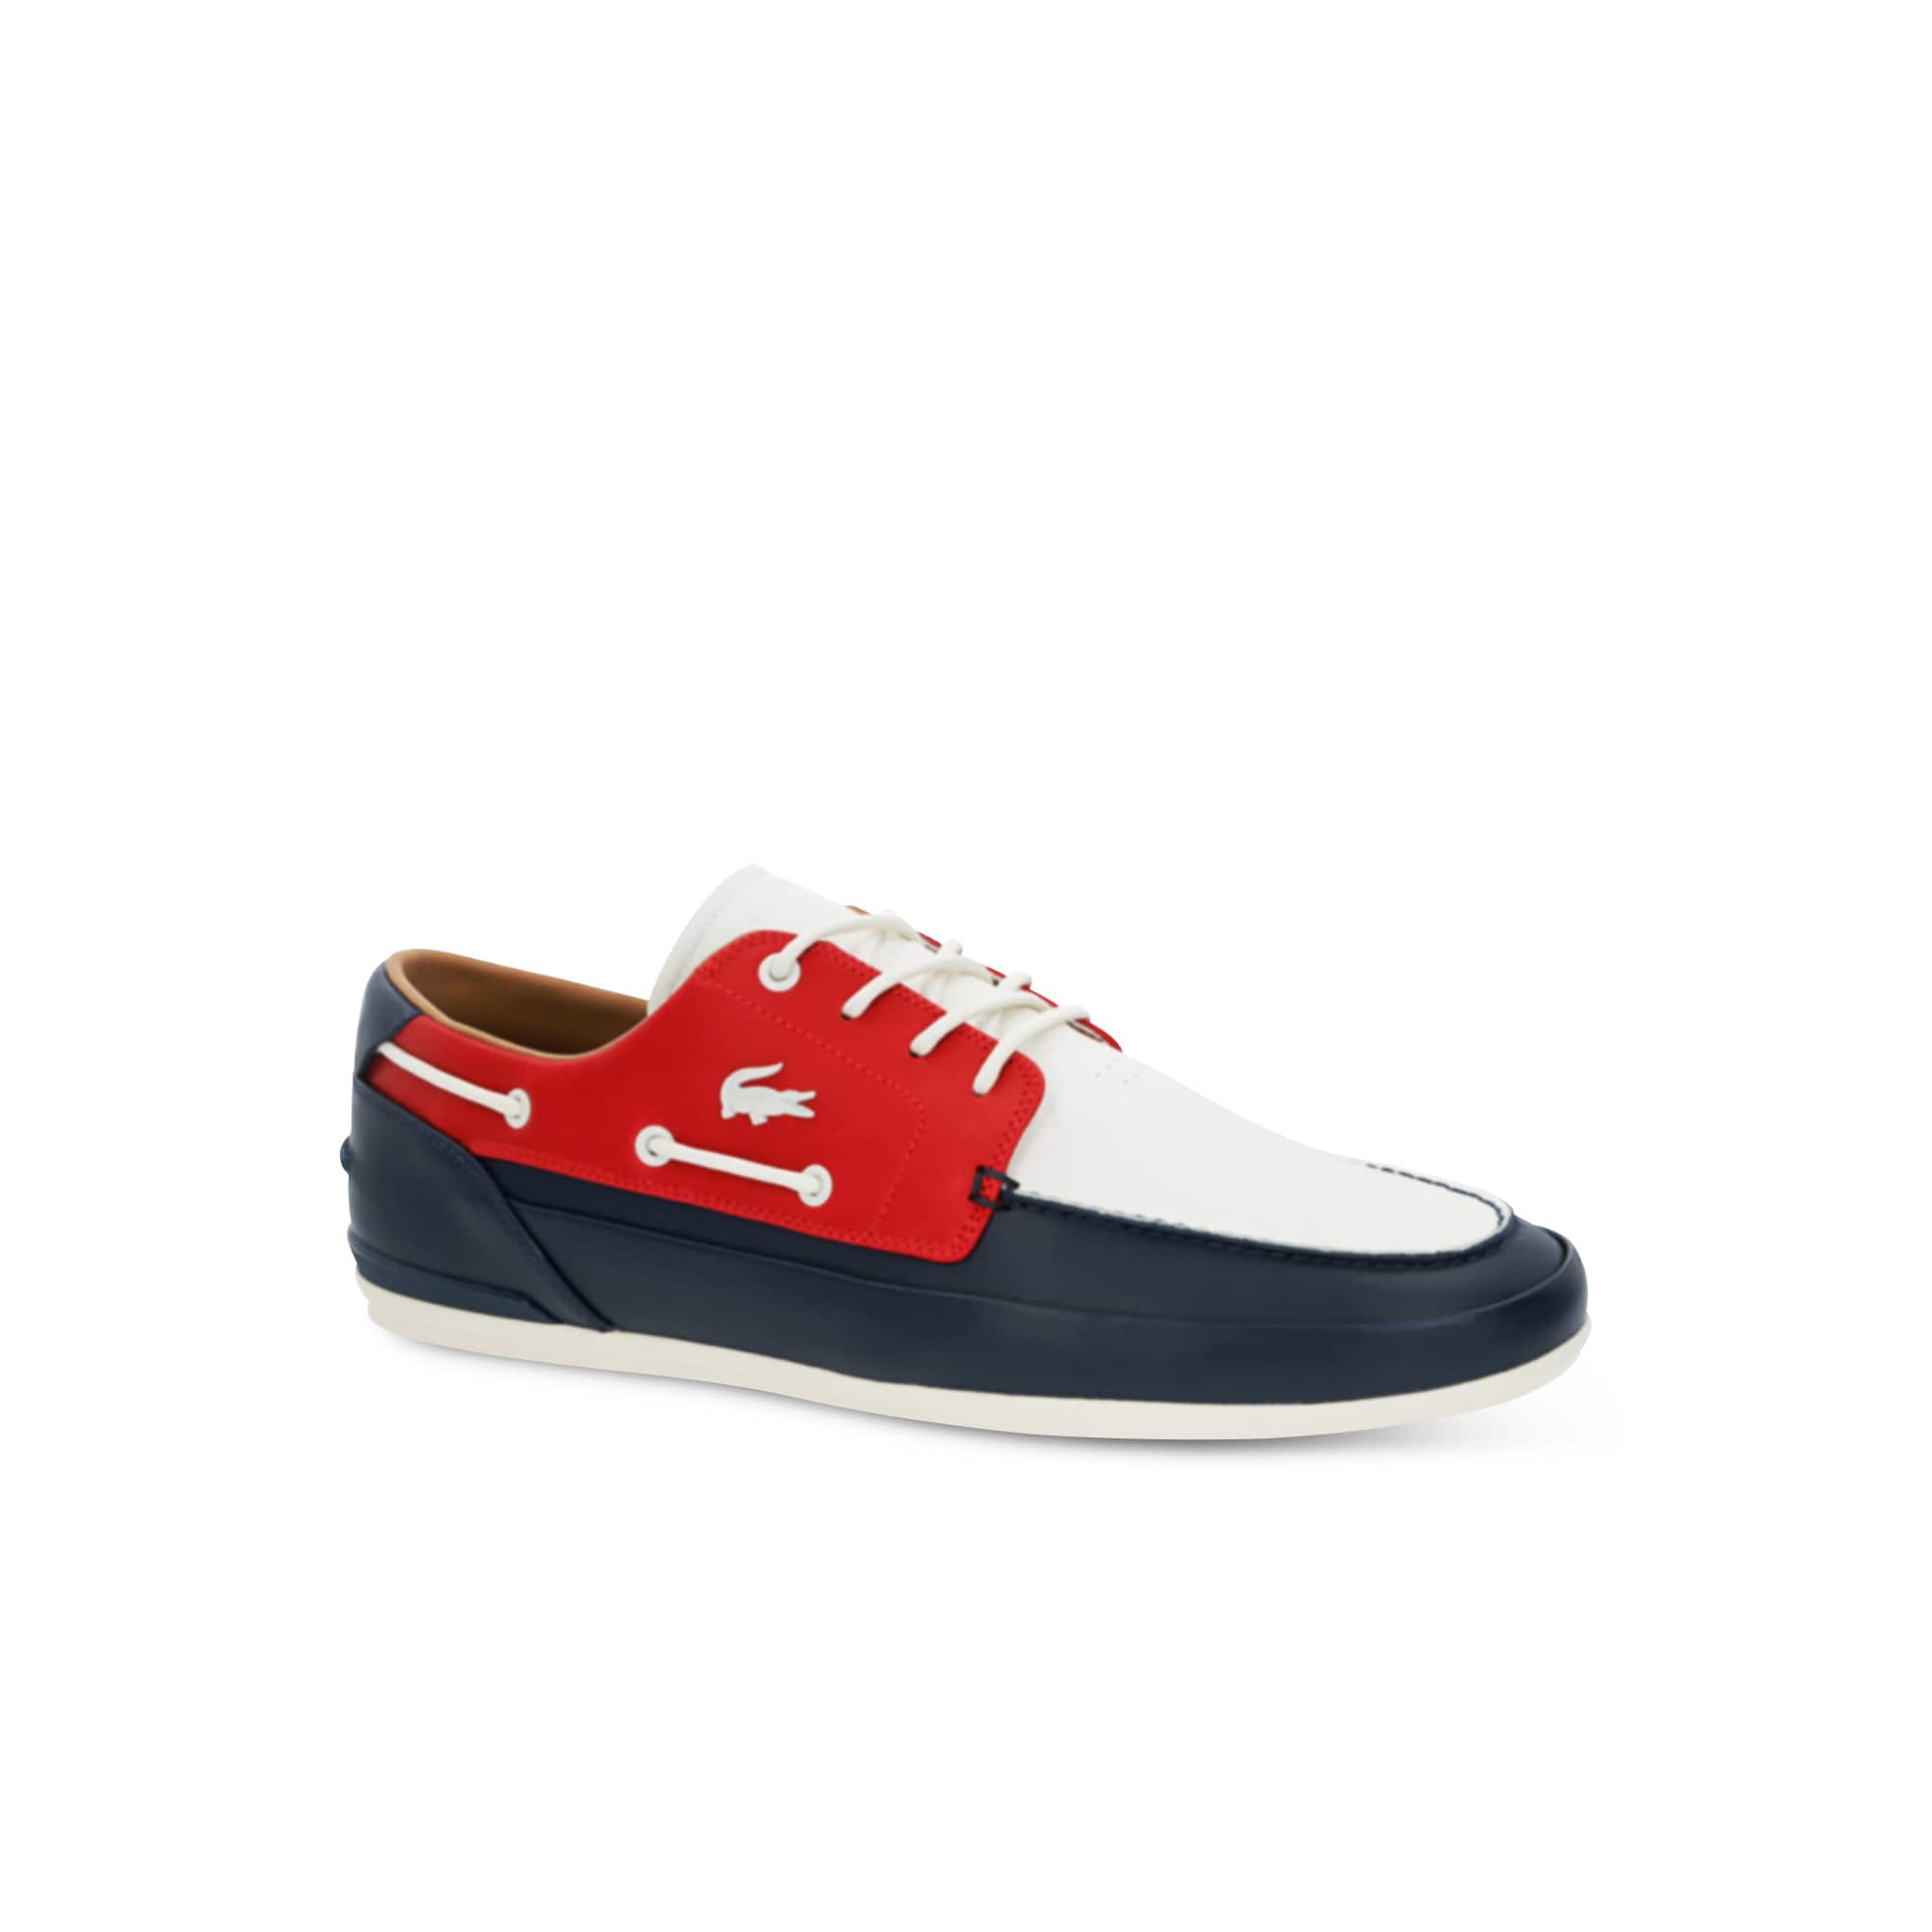 49ecb98b8598c Men s Marina Leather Deck Shoes.  135.00. Lacoste ...